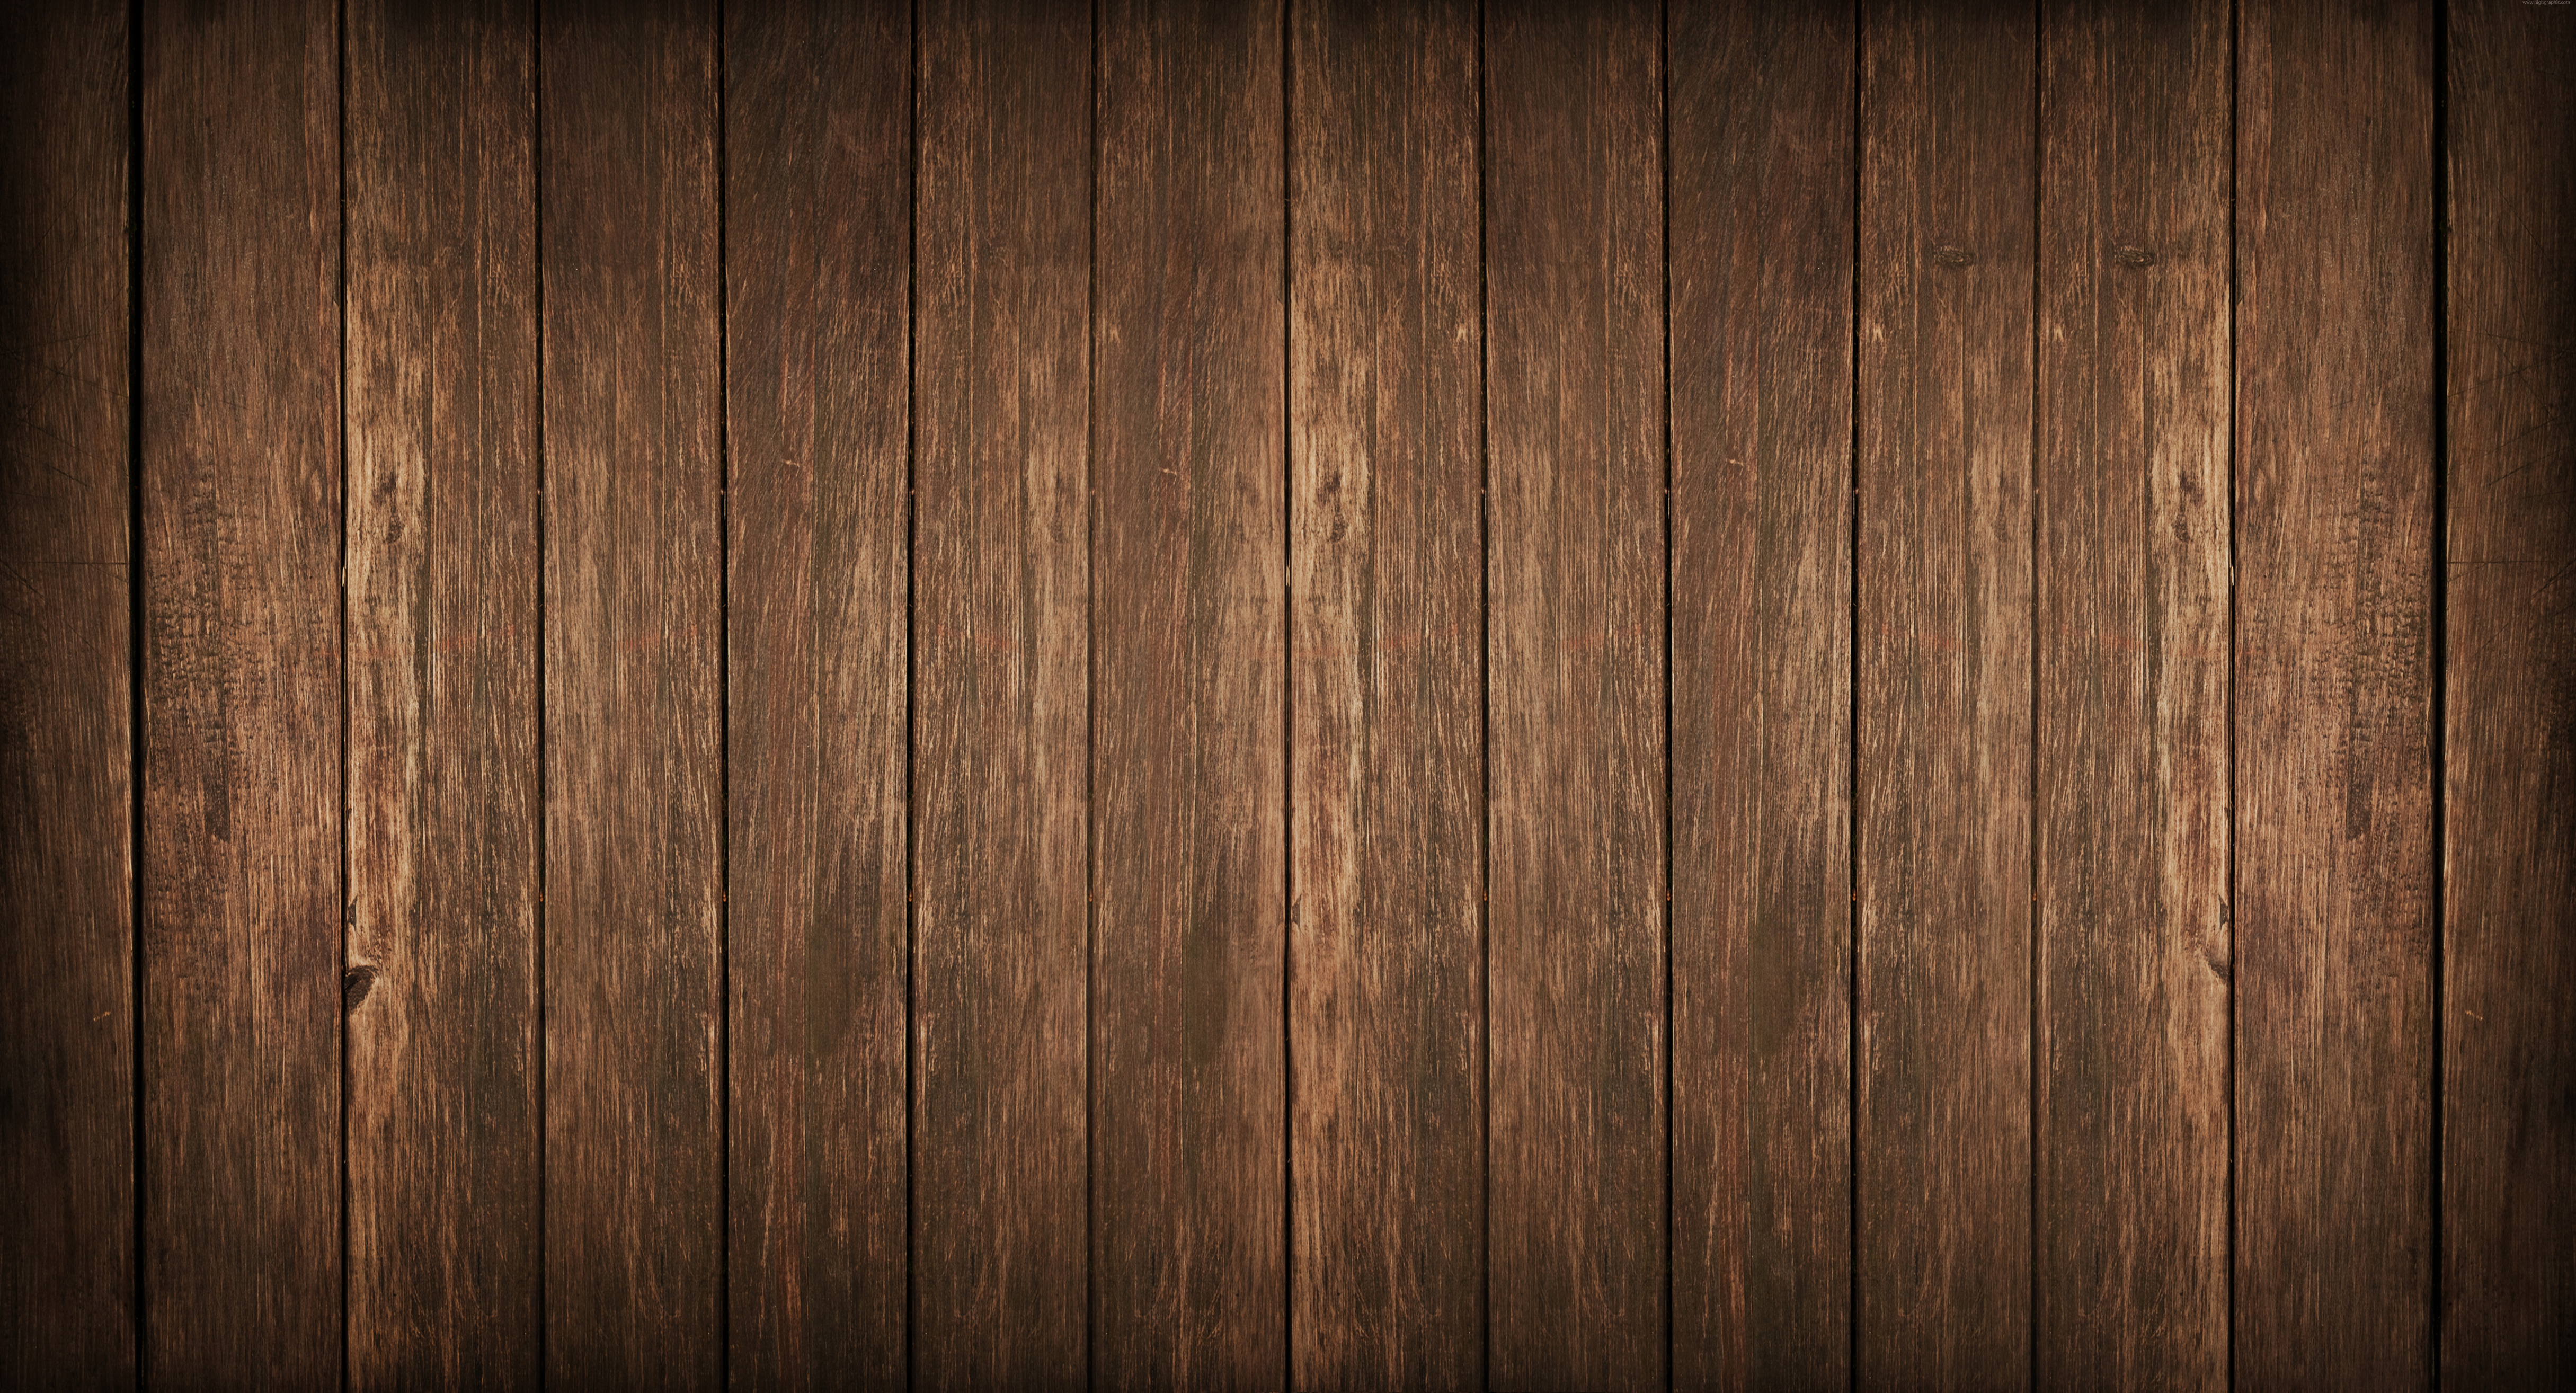 Wood panel background crvd medium wood paneling makeover Paneling makeover ideas